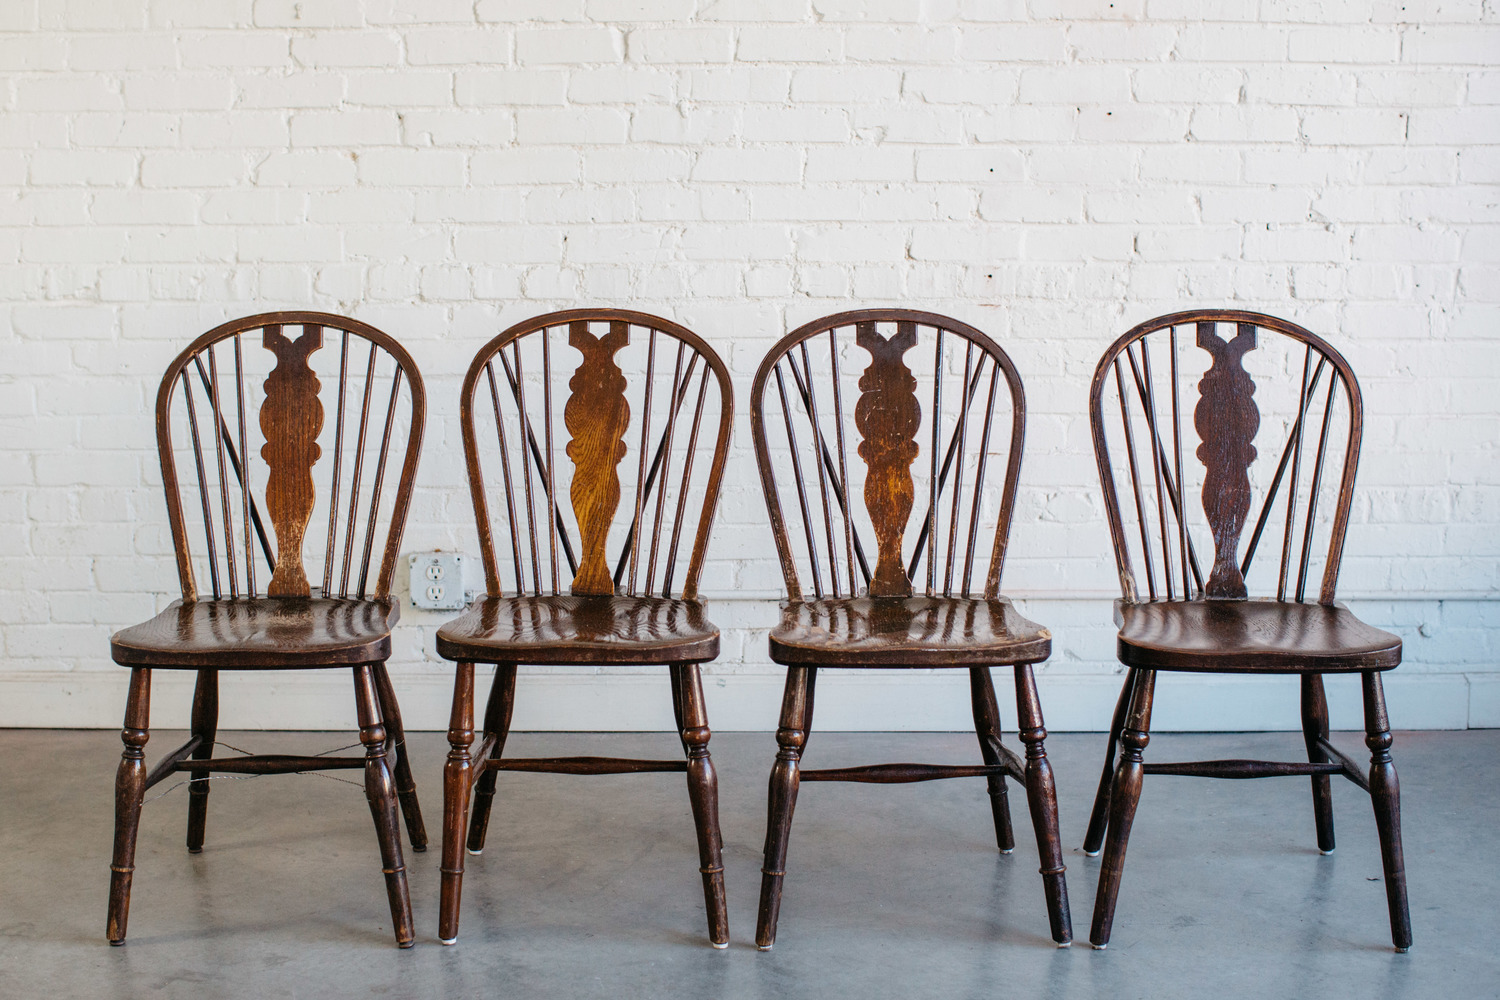 chair windsor price lucian ercol for per by chairs set of ercolani